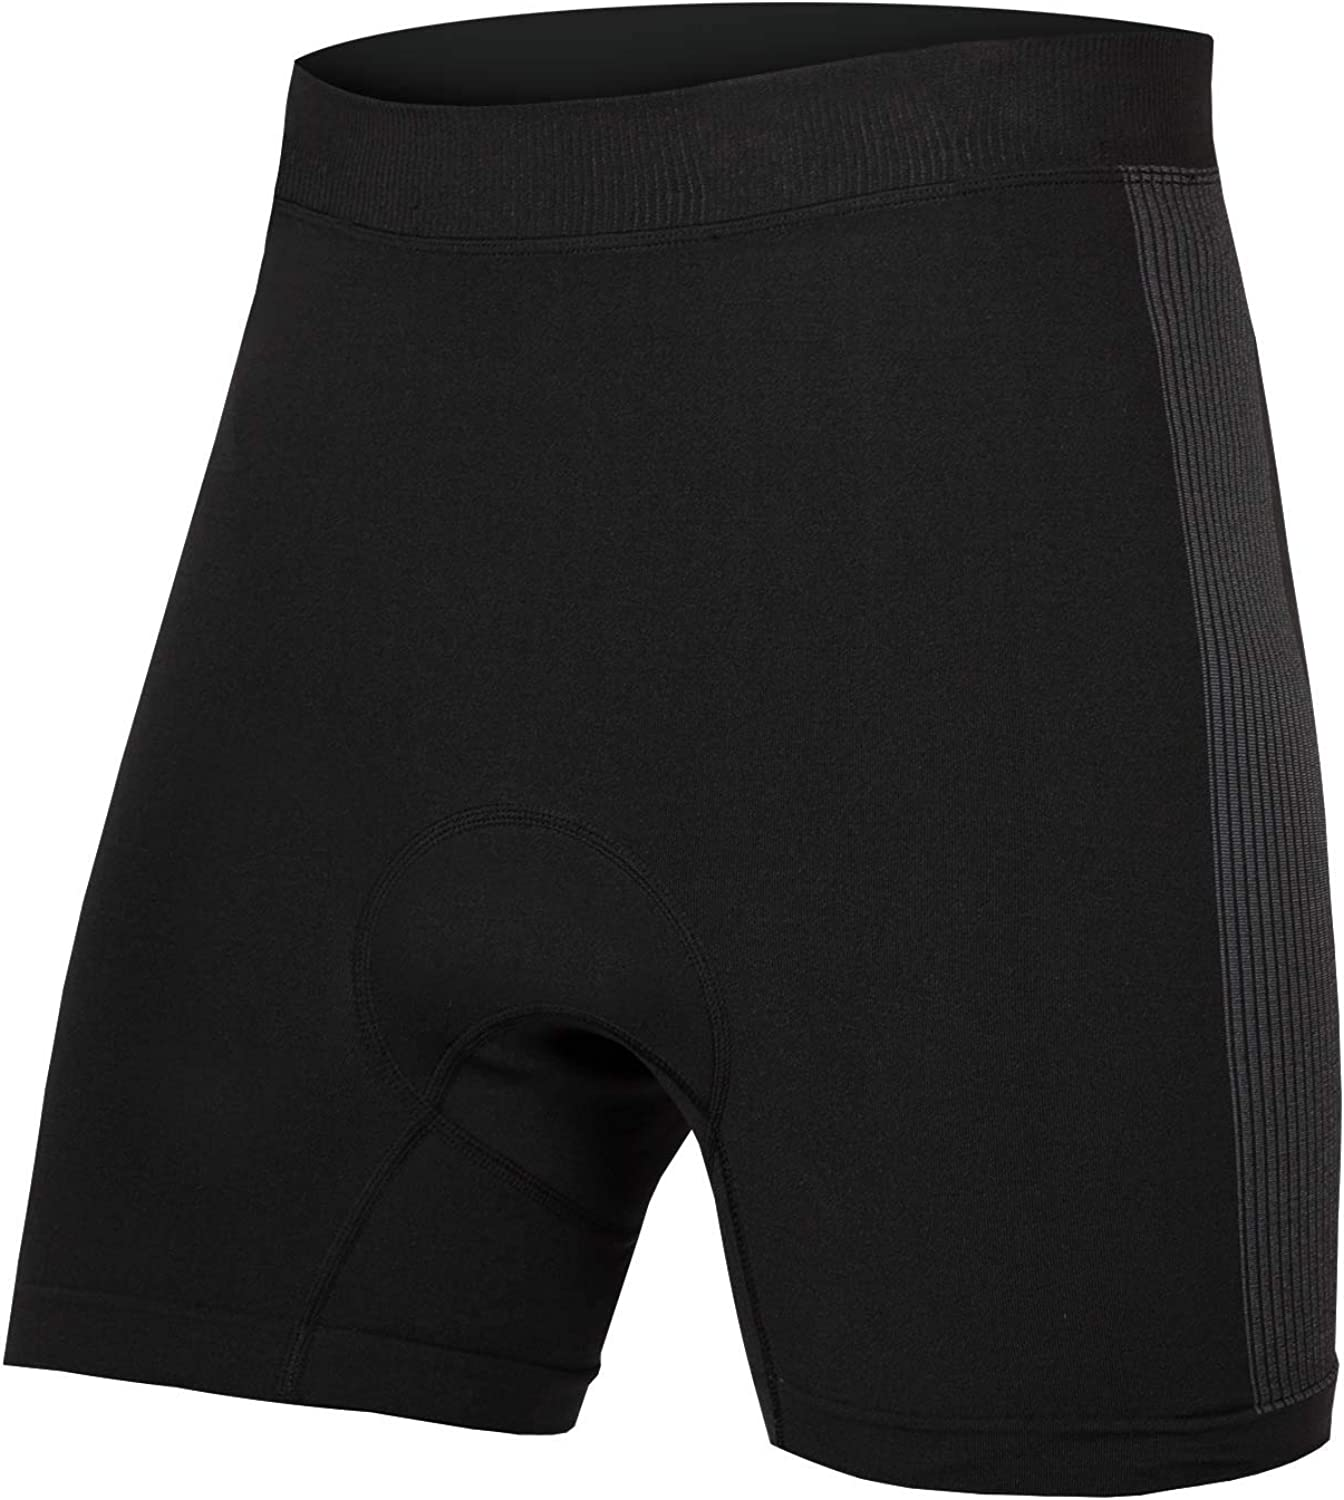 Endura Men's Engineered Padded Cycling Los Angeles Mall Boxer Max 82% OFF II